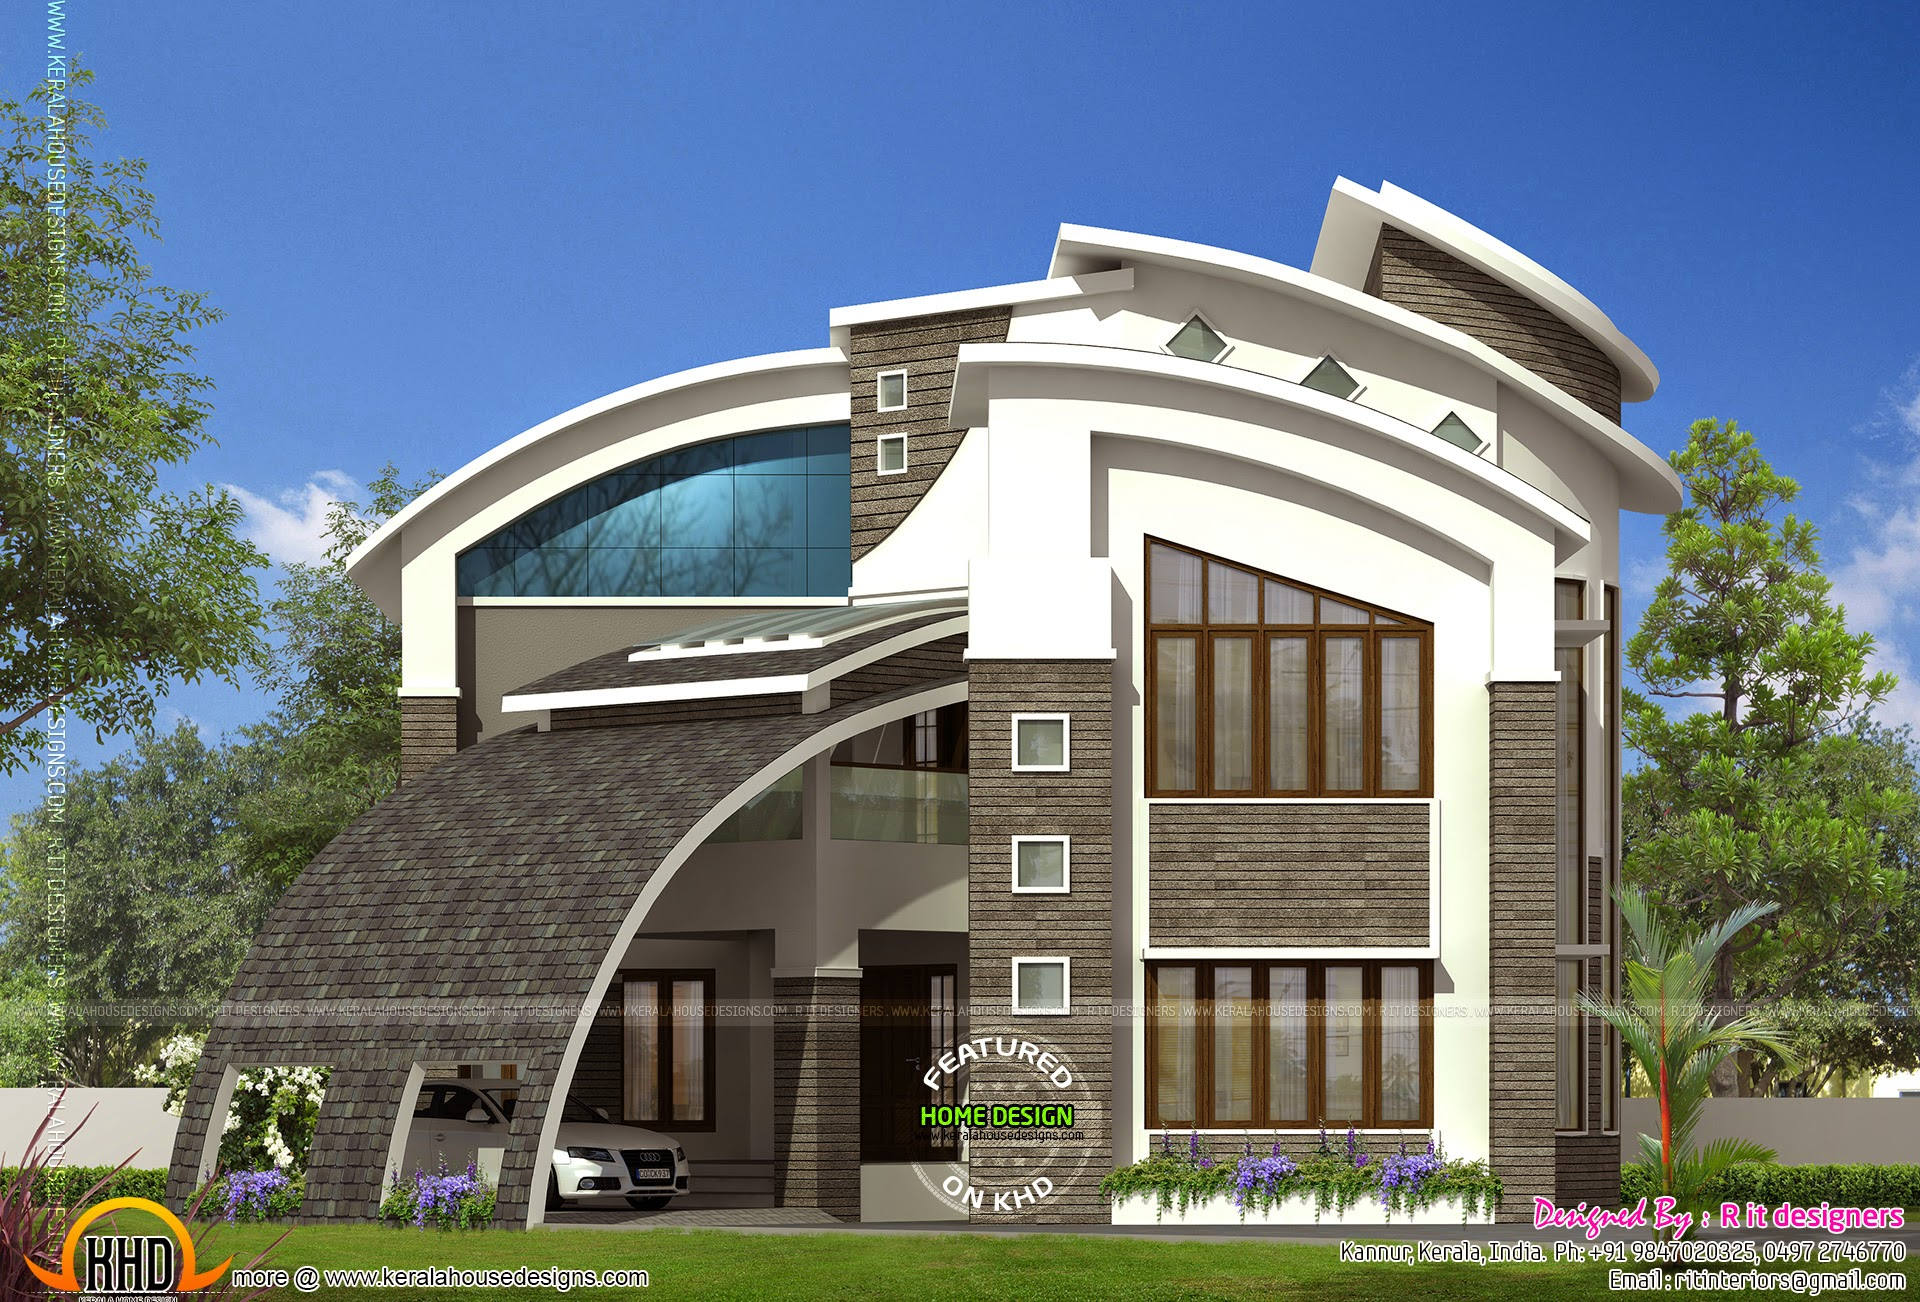 Most modern contemporary house design kerala home design for New build house designs